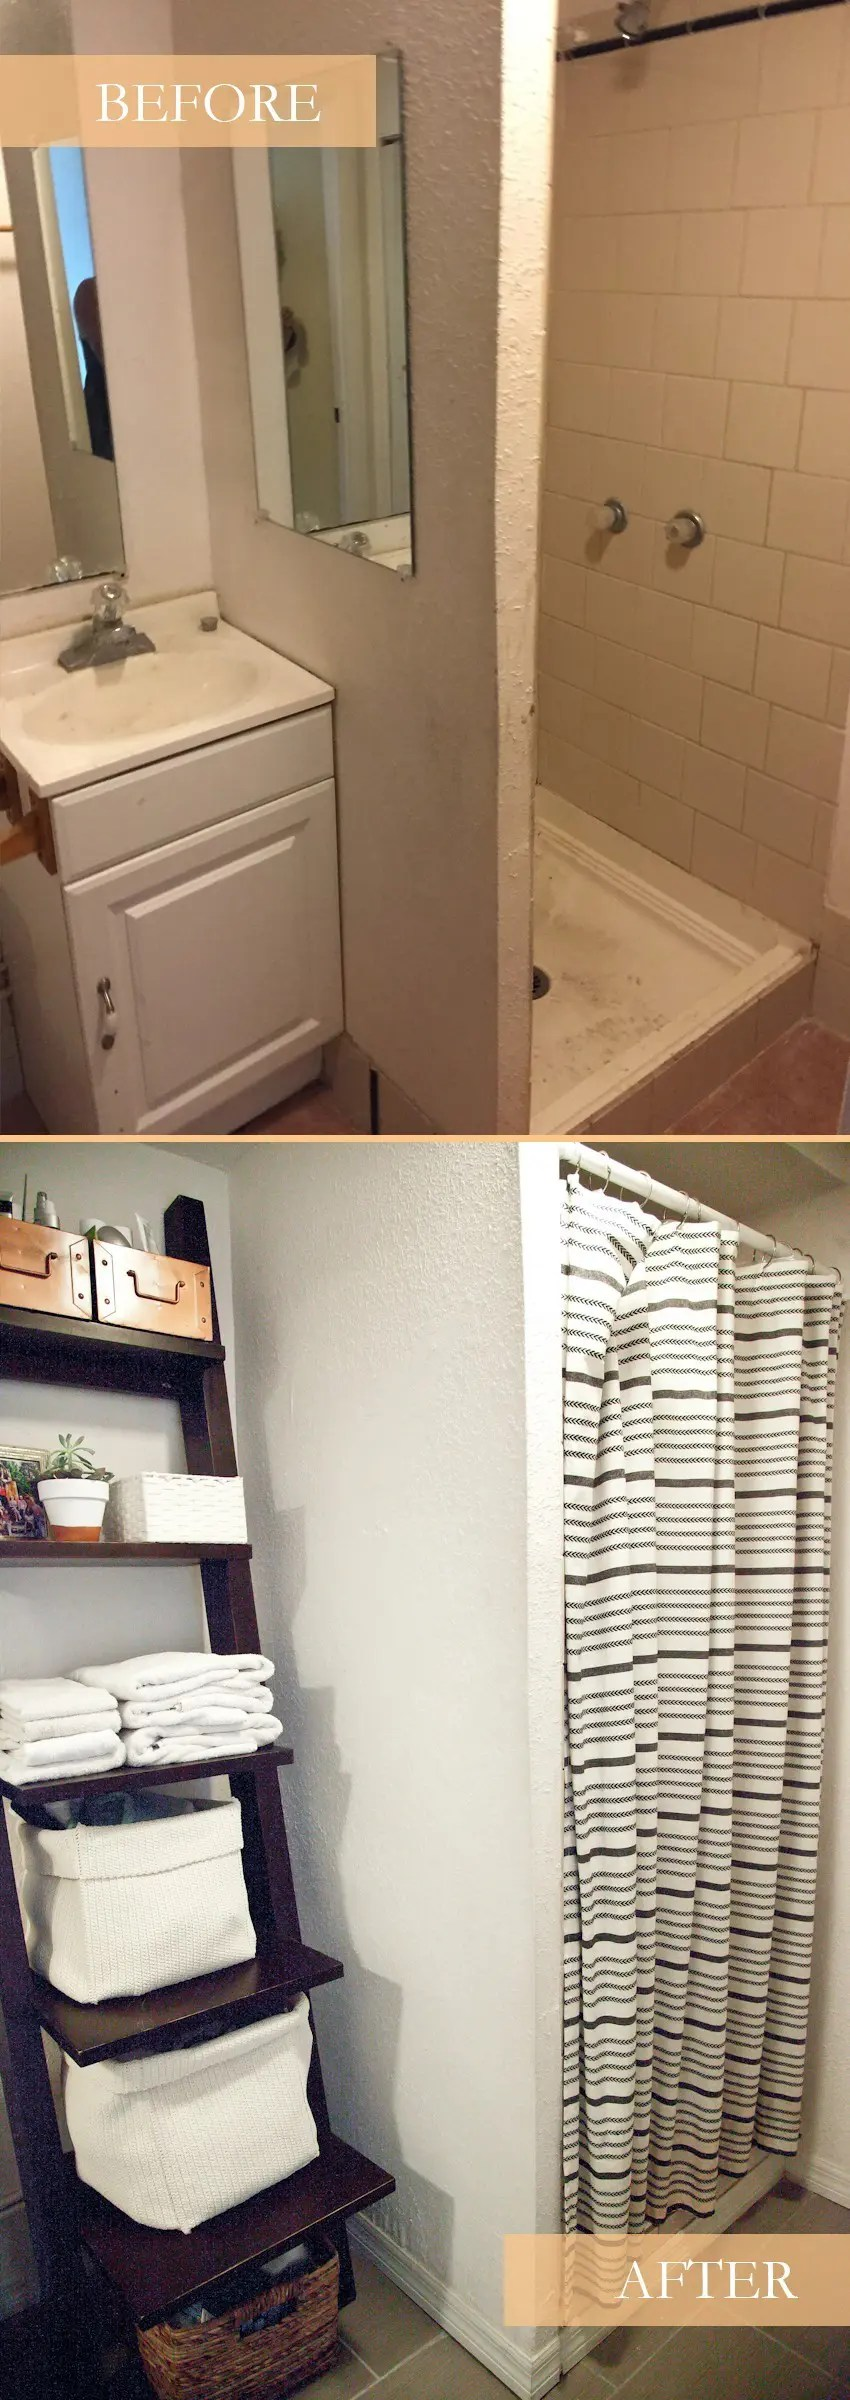 Bathroom Remodel Blog Tips And Tricks For Planning A Bathroom